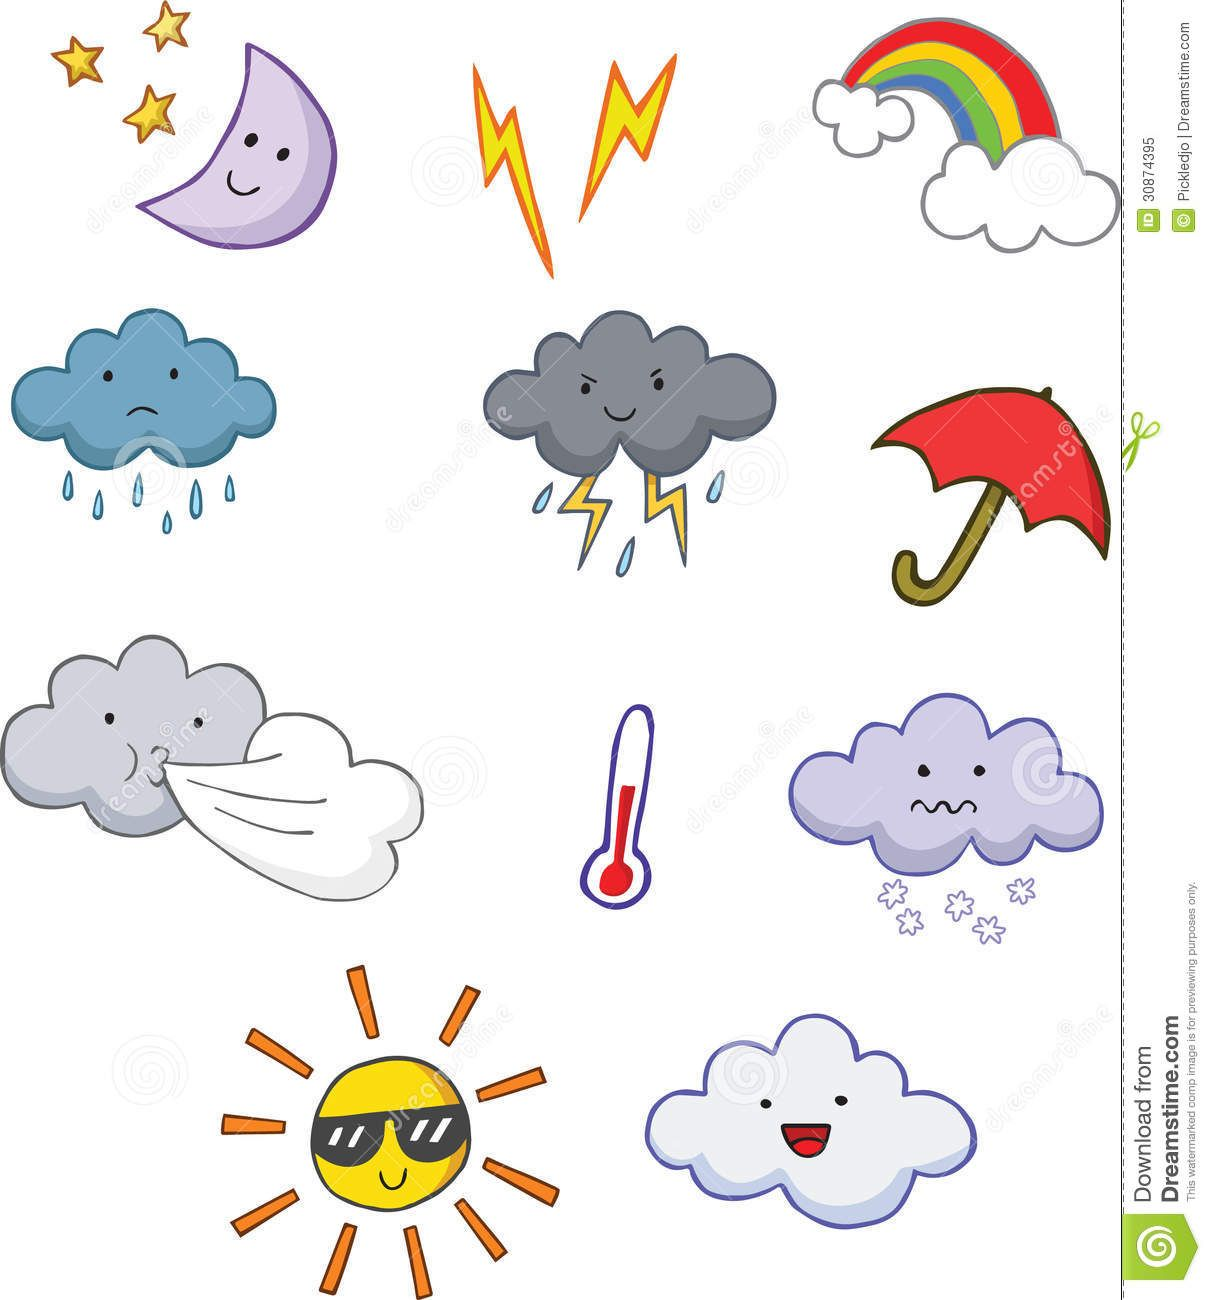 Fun Cute Cartoon Weather Symbols Download From Over 40